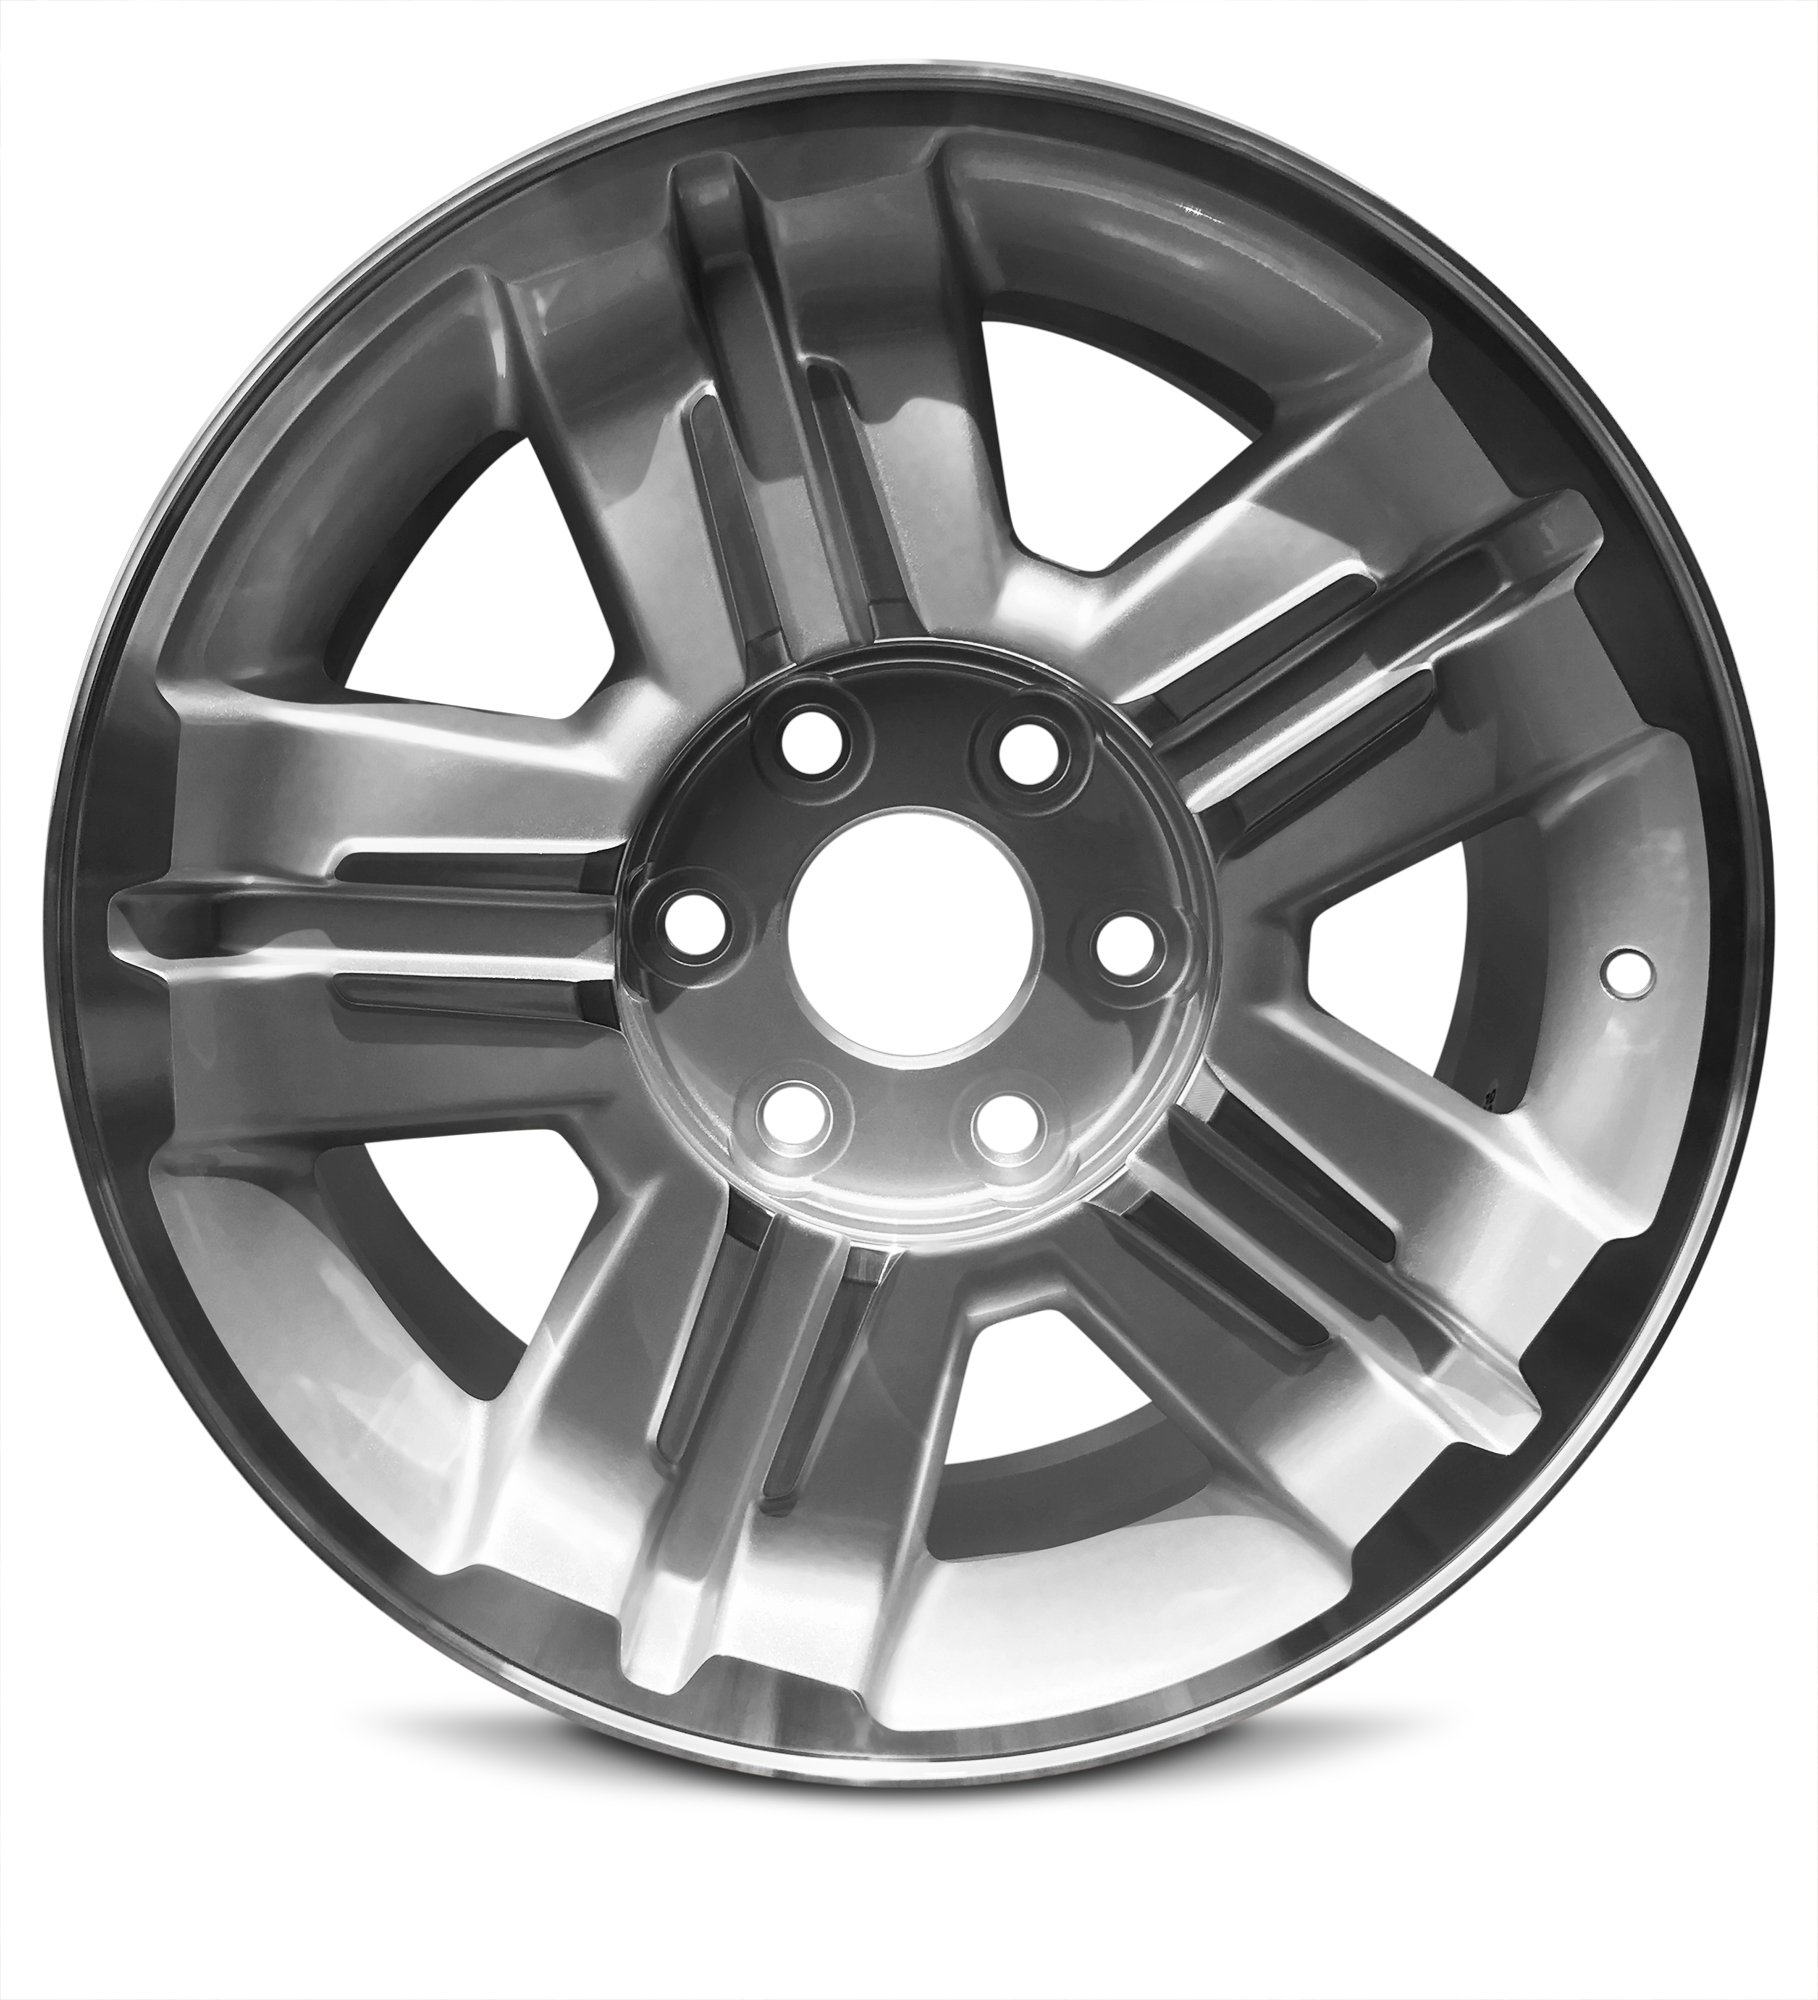 New 18 x 8 Inch 6 Lug GM Avalanche (08-13) Silverado 1500 (08-13) Suburban (08-14) Tahoe (08-14) Silver Aluminum Full Size Replacement Wheel Rim (18x8 6x139.7mm Offset :31mm & Center Bore of 78.1mm)